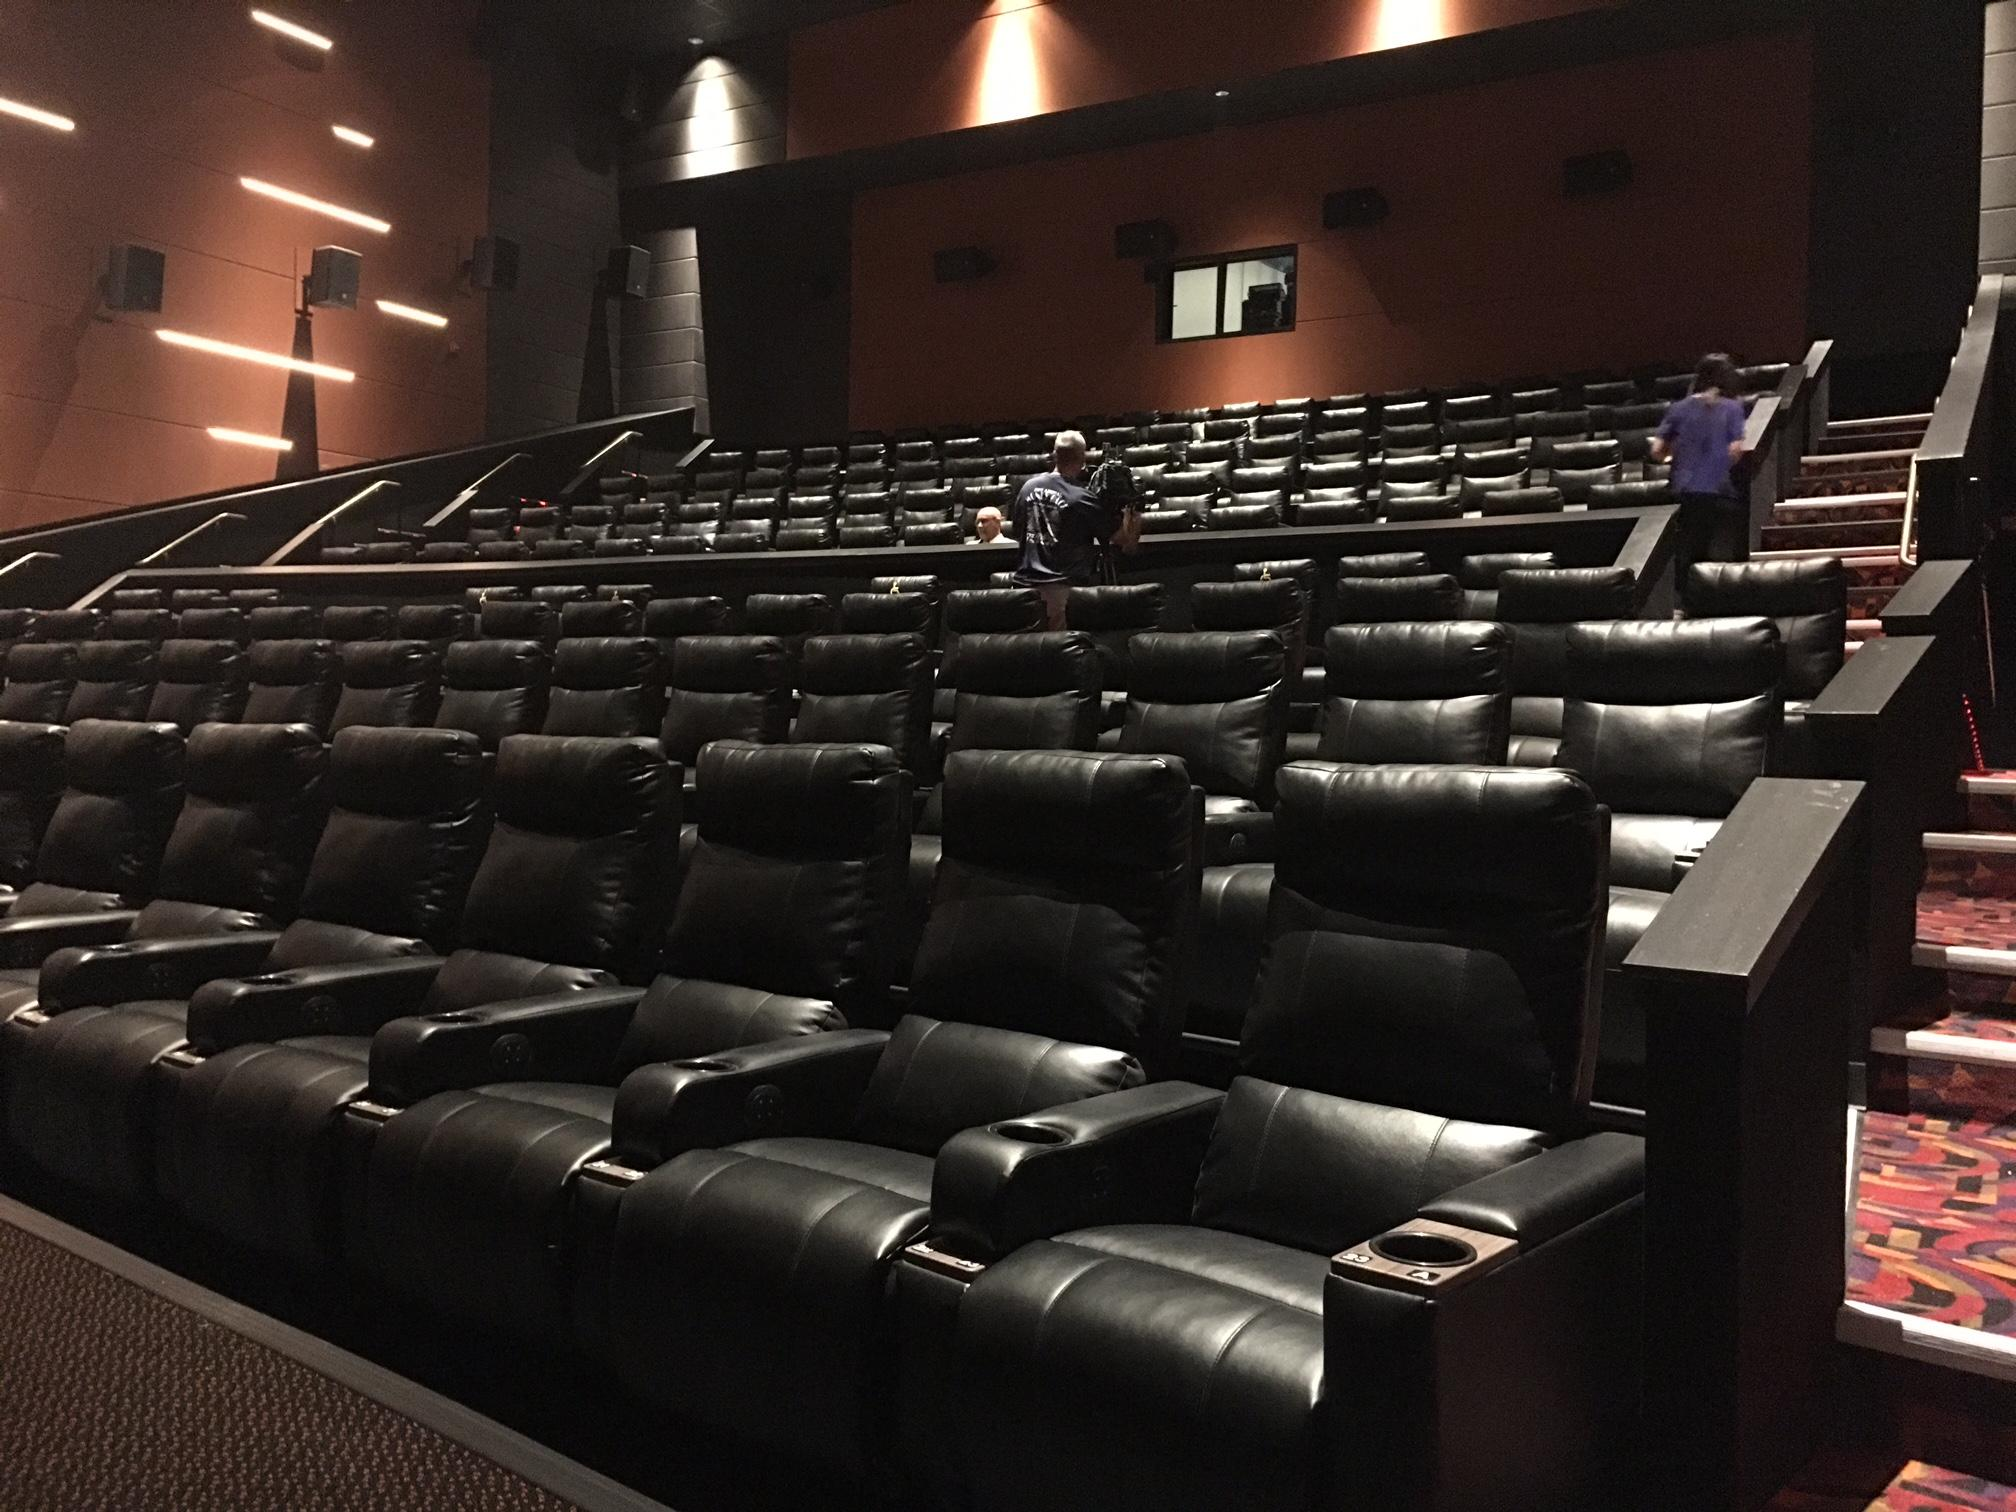 Photo by Mari Cockerell/KTXS News: The long-awaited, new state-of-the-art Cinemark theater will officially open Thursday in northeast Abilene.